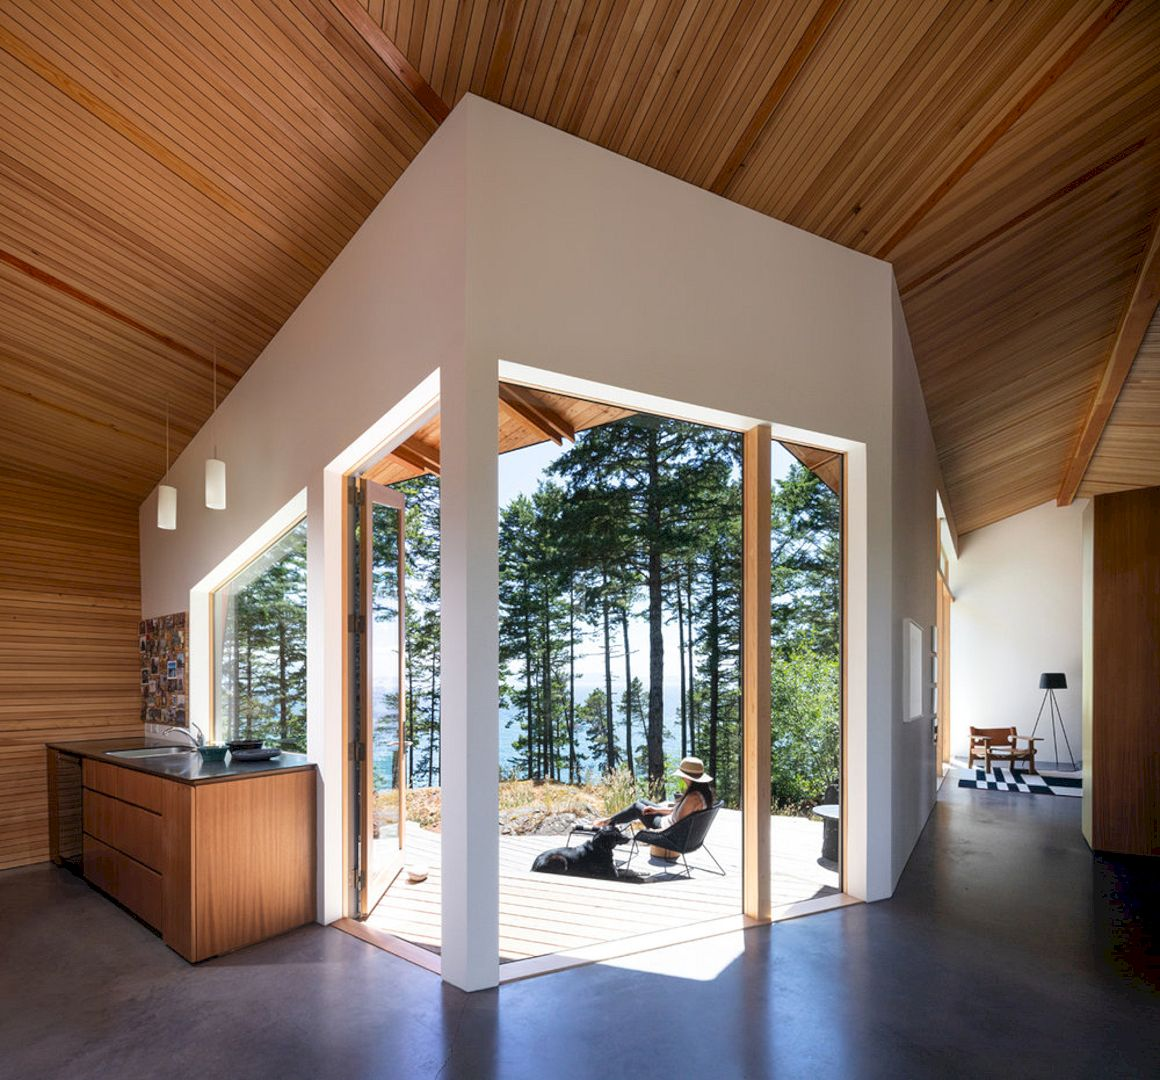 Sooke 01 House By Campos Studio 2